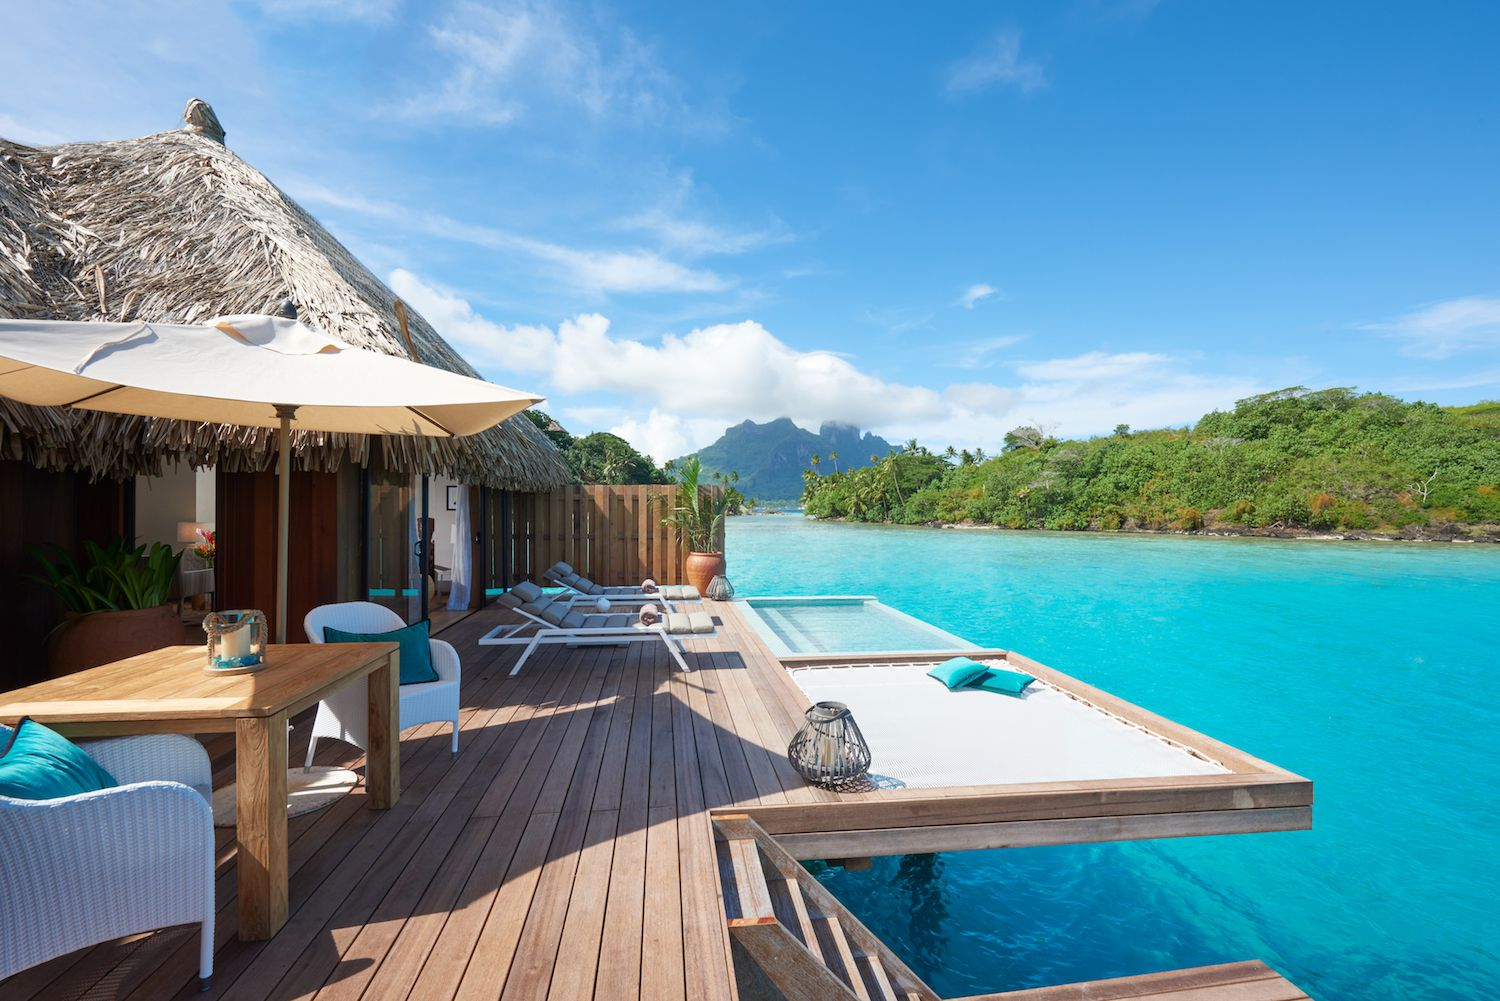 5 Overwater Bungalows You Can Stay at With Points